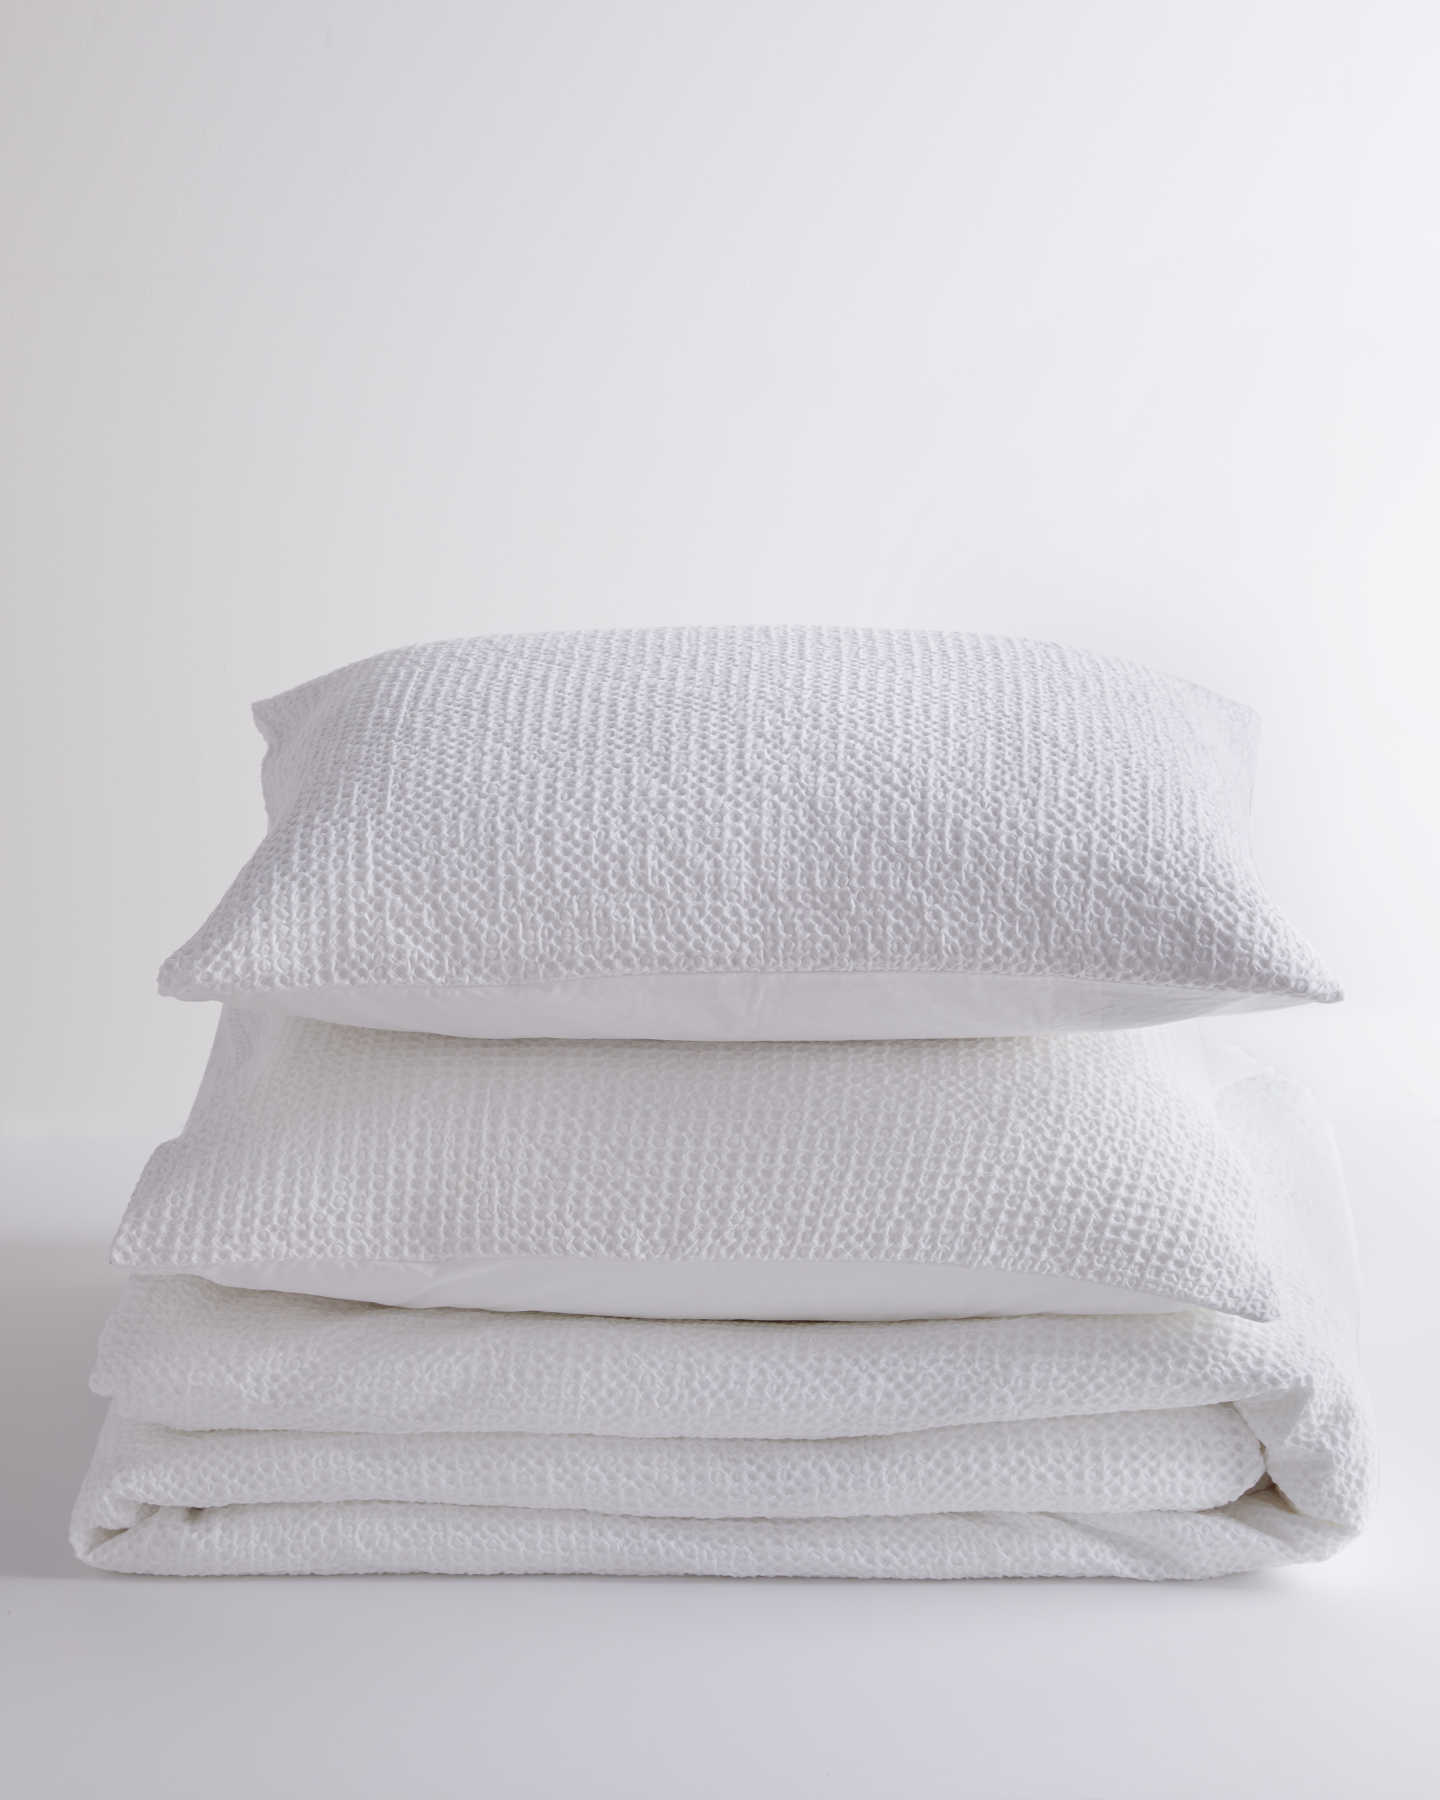 Pair With - Organic Luxe Waffle Duvet Cover Set - White